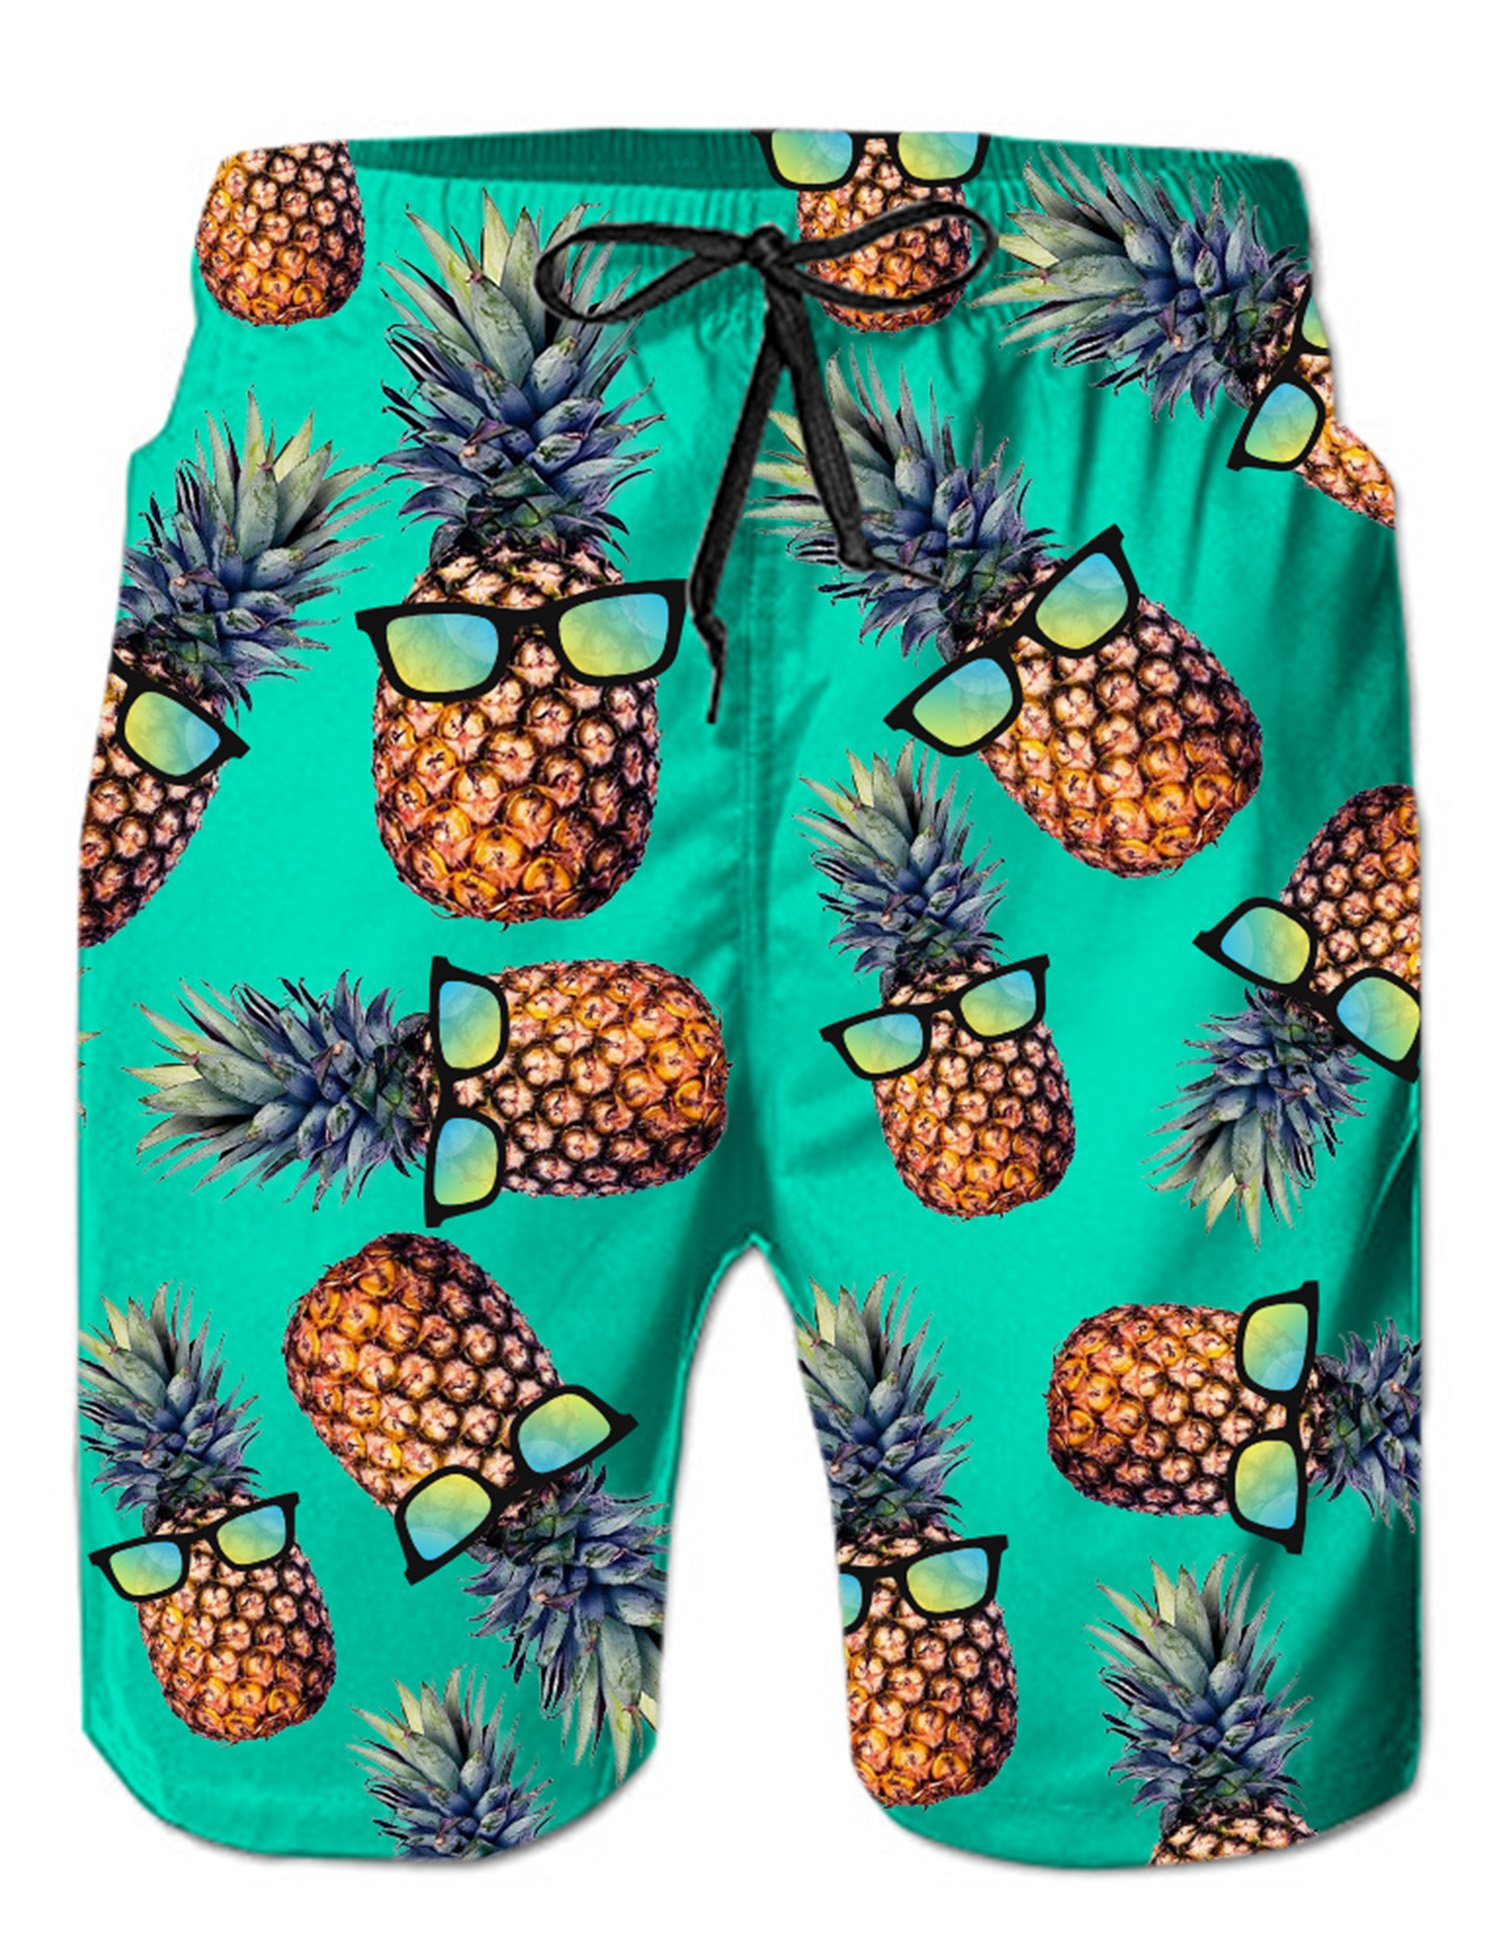 Loveternal Adult Mens 3D Print Graphic Swimming Trunks Loose Fit Funky Pineapple Bathing Suits with Drawstring Polyester Tropical Swimsuits Male Soft Quick Dry Beach Shorts Blue Green L by Loveternal